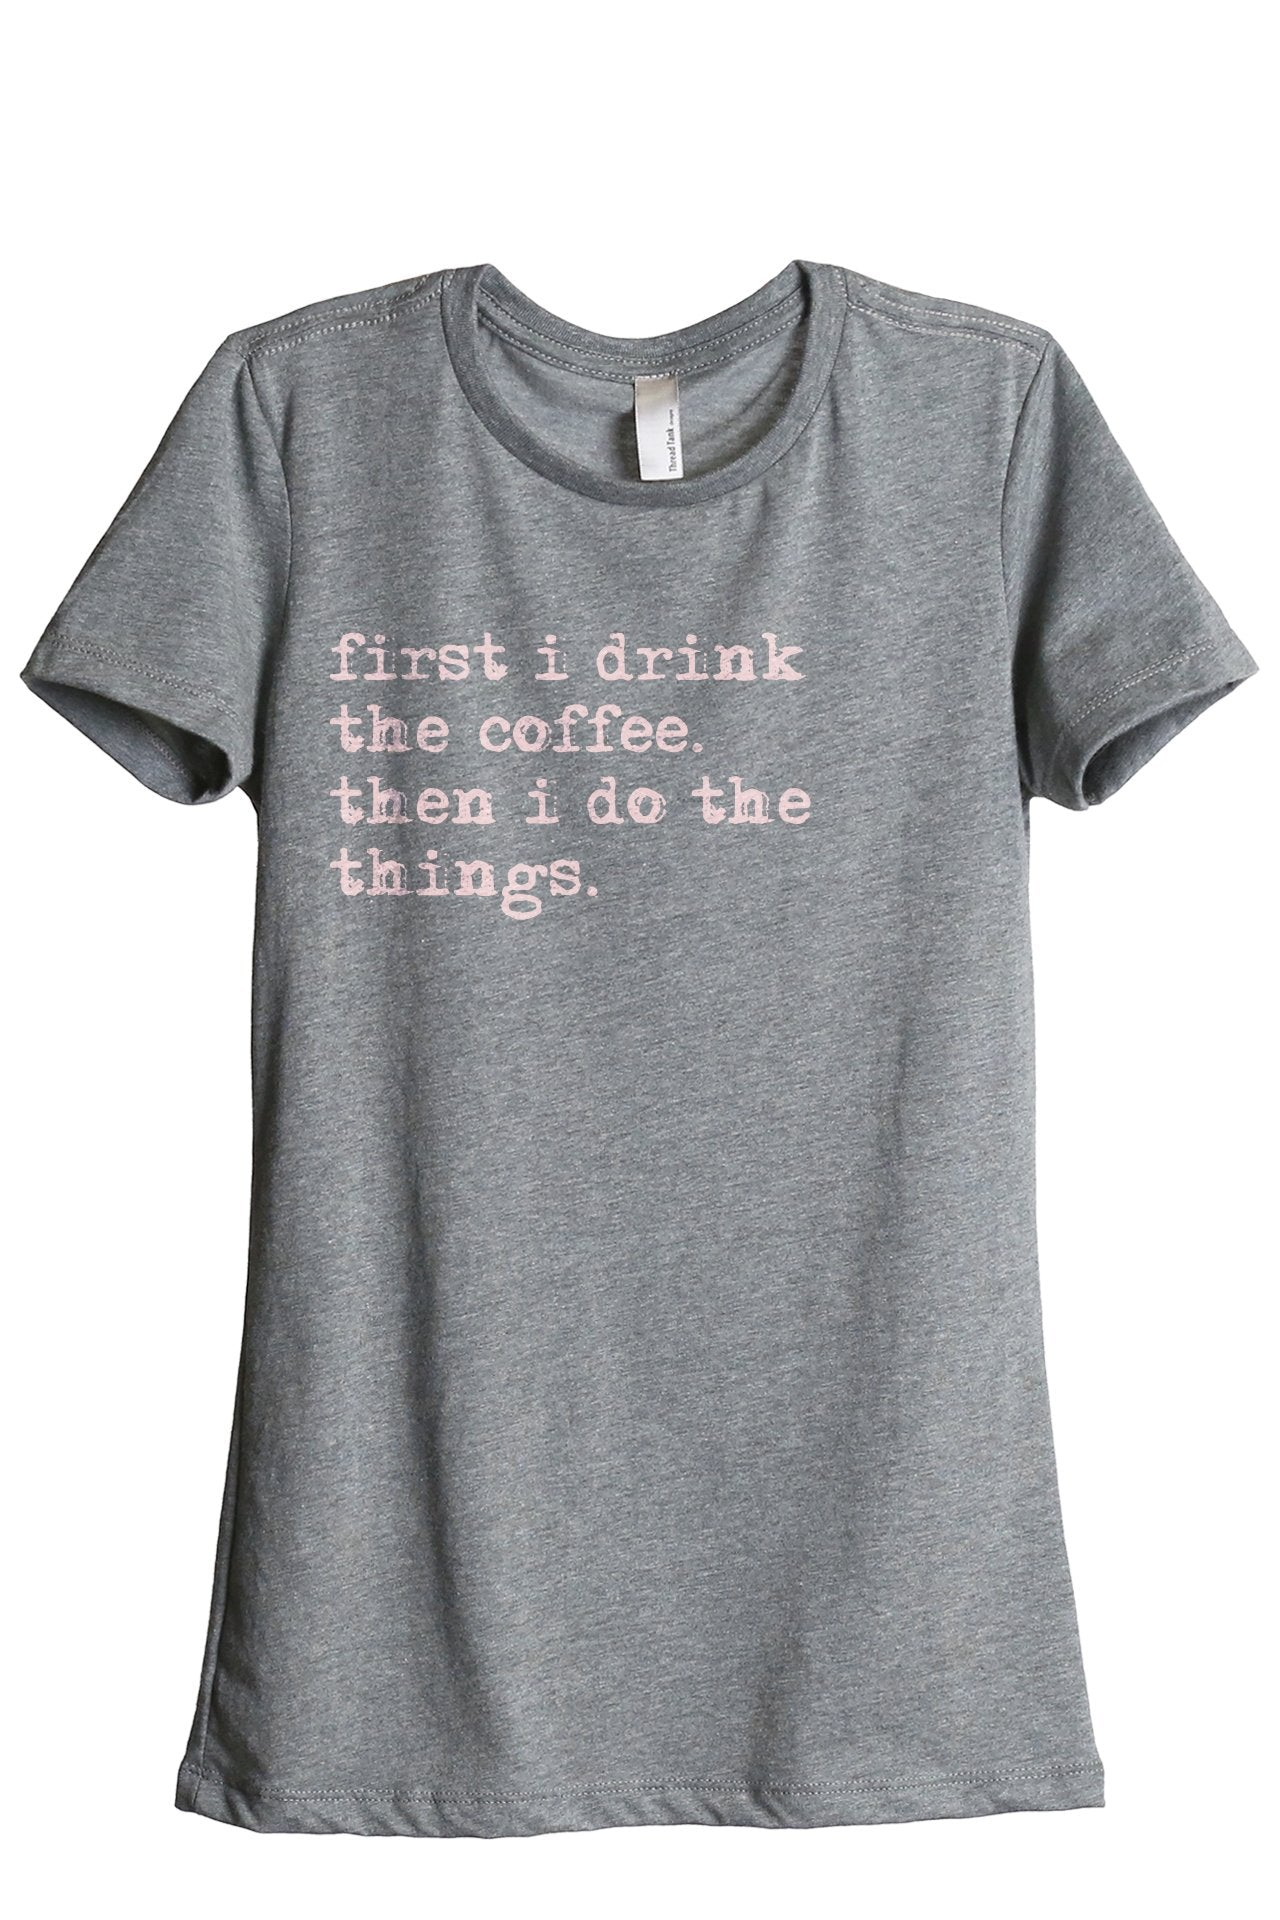 First Drink Coffee Do Things - Thread Tank | Stories You Can Wear | T-Shirts, Tank Tops and Sweatshirts